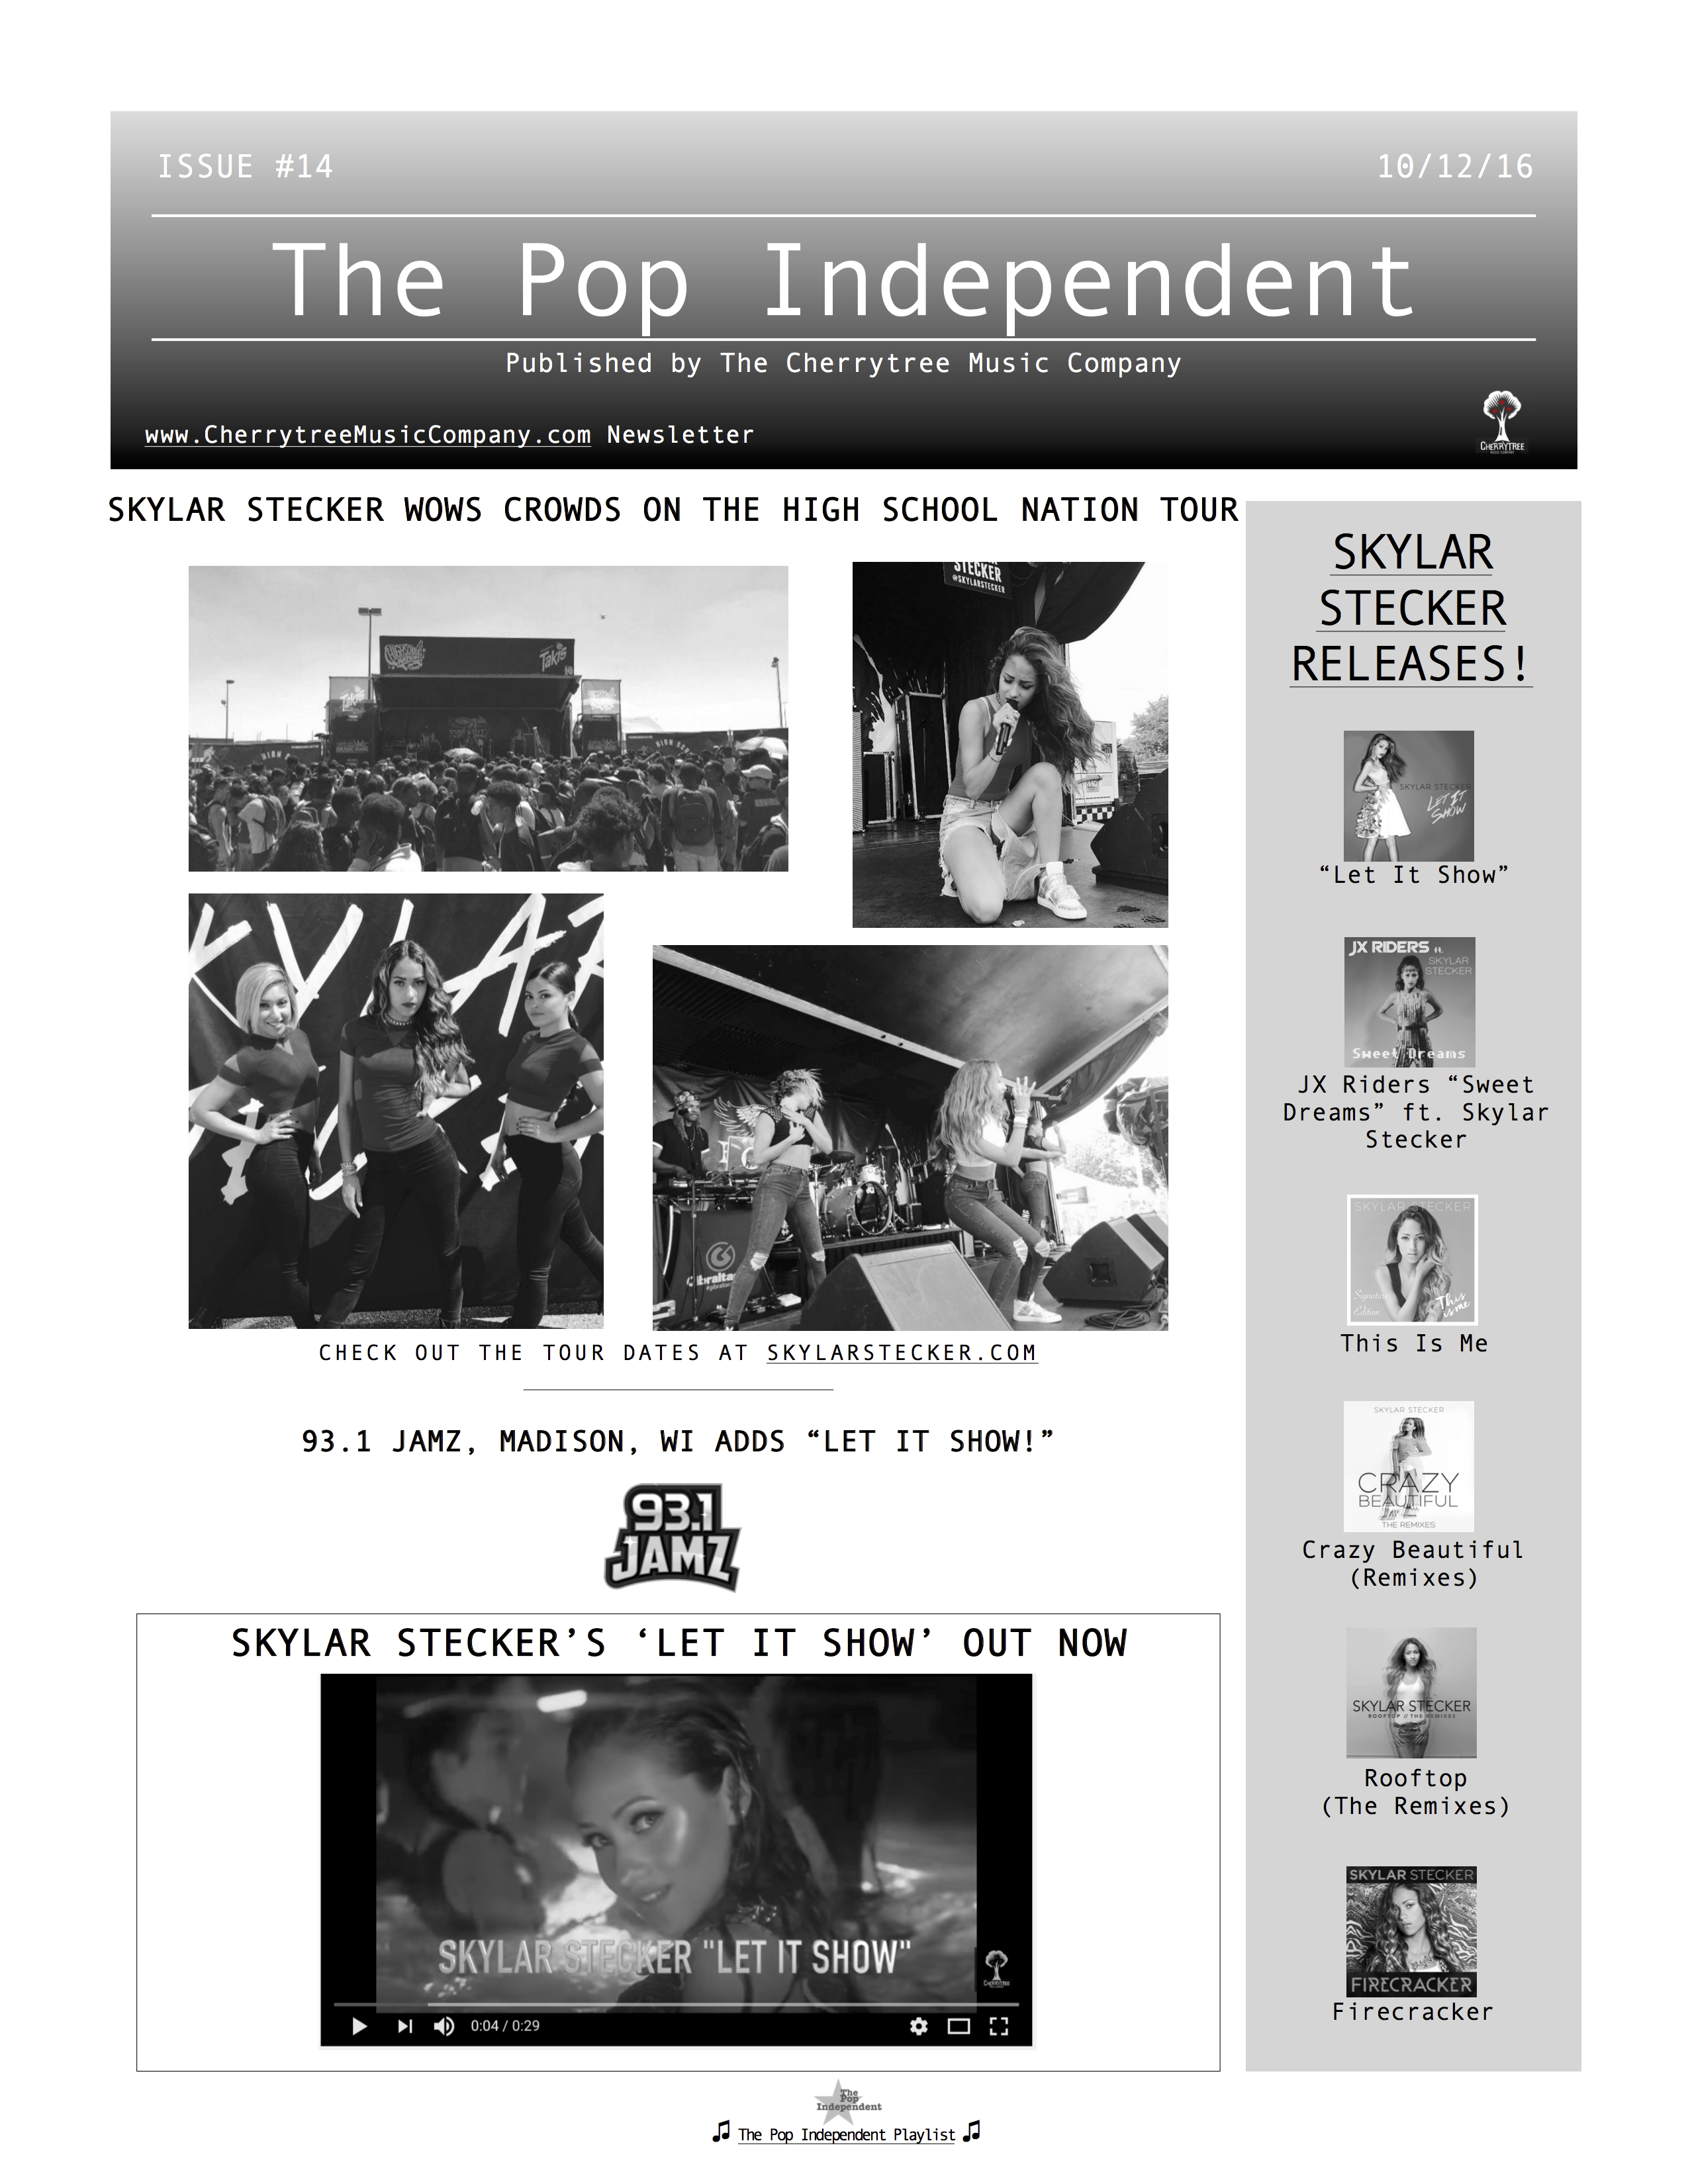 The Pop Independent, issue 14